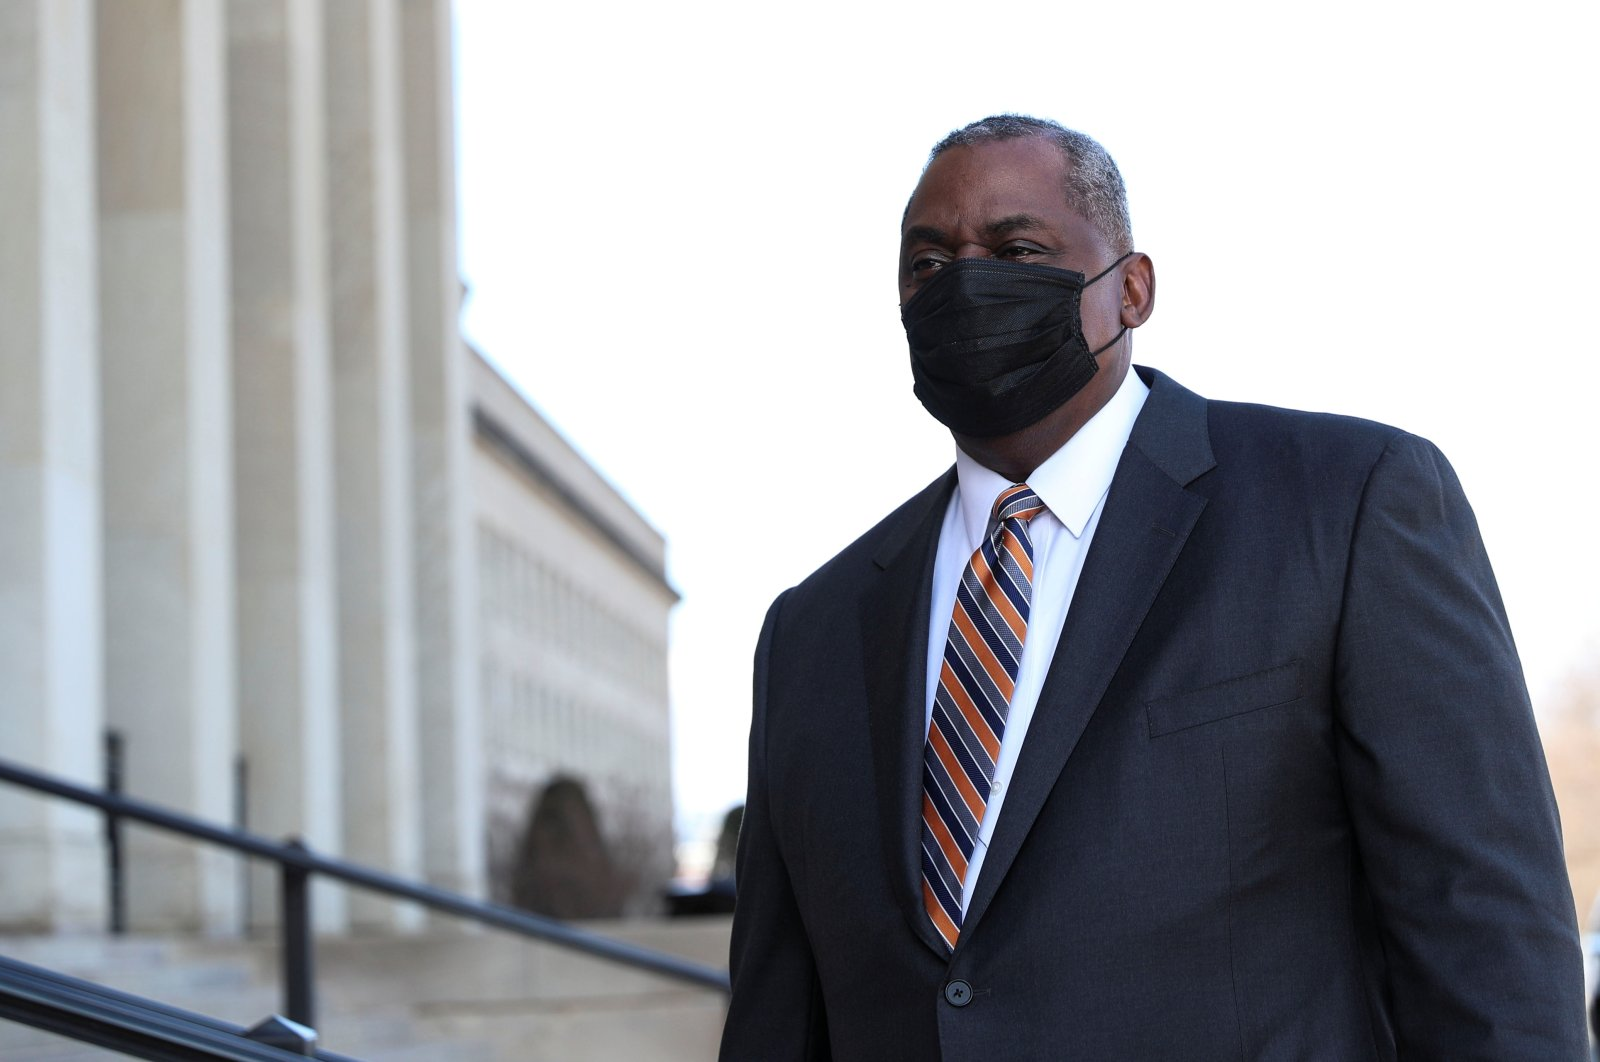 Newly confirmed U.S. Defense Secretary Lloyd Austin arrives to begin his first day in office at the Pentagon in Arlington, Virginia, U.S., January 22, 2021. (Reuters Photo)